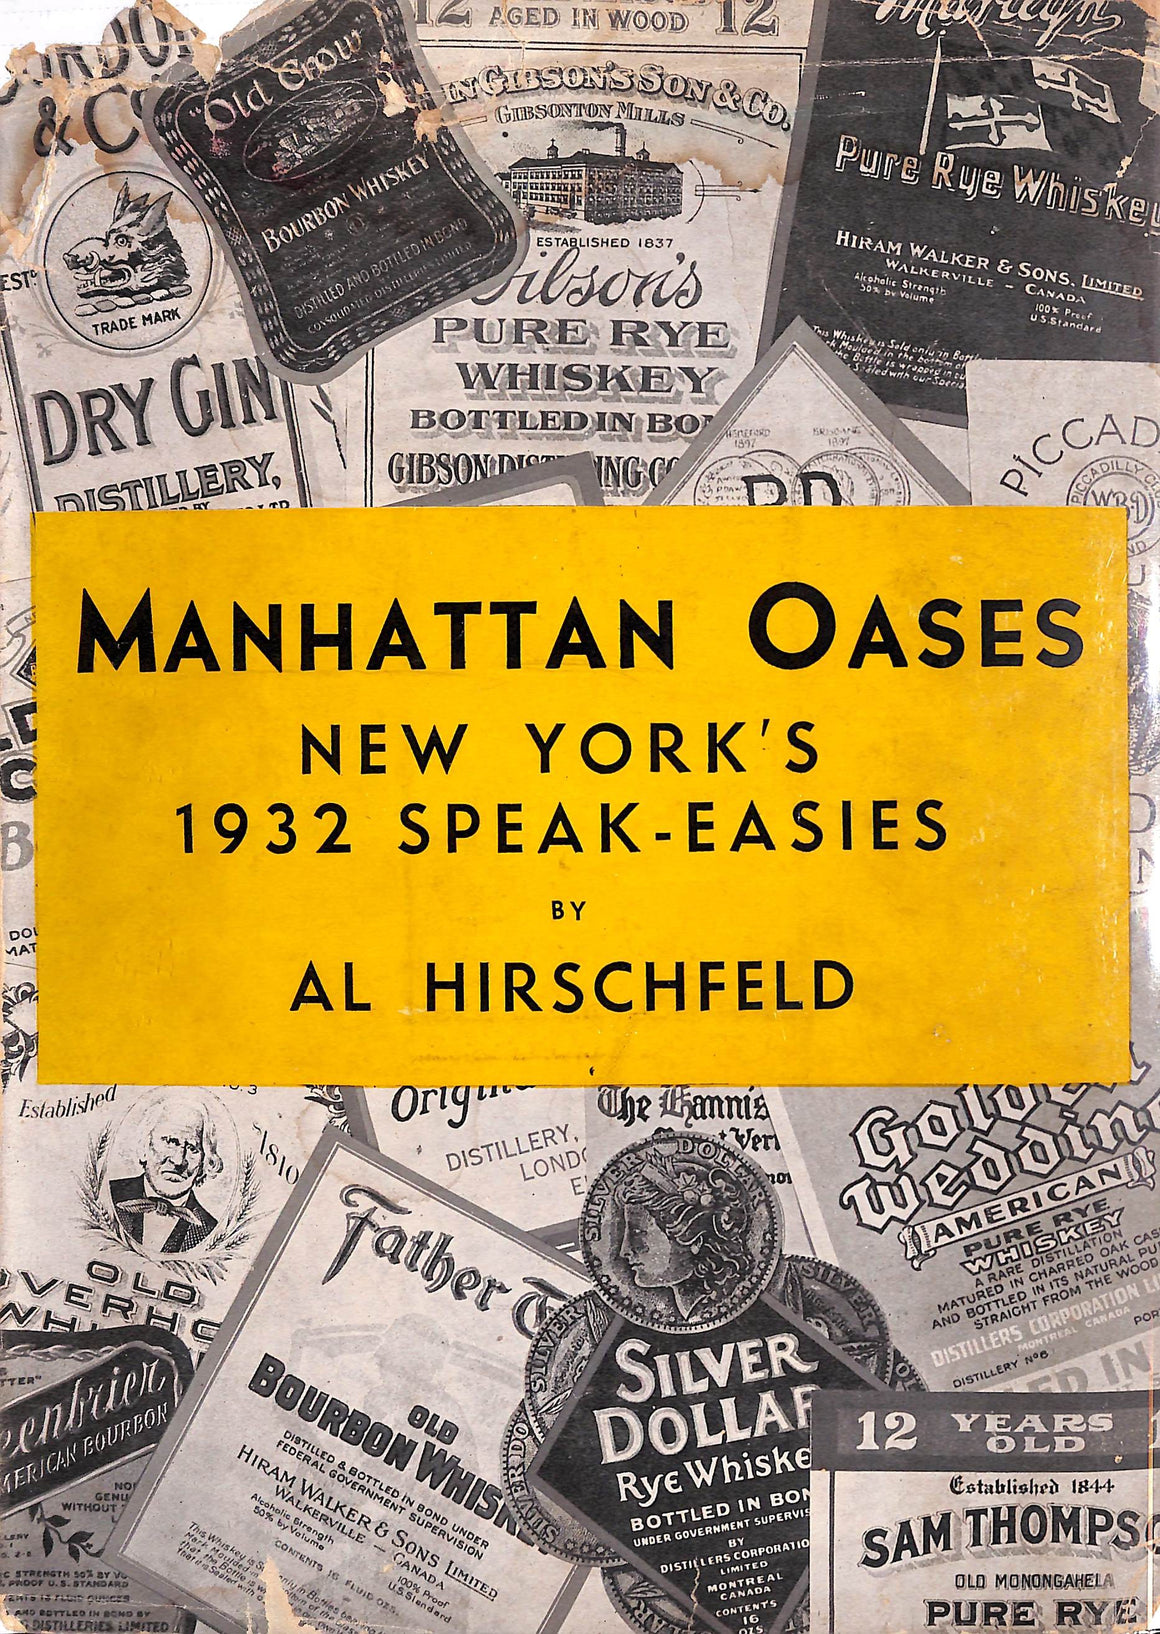 """Manhattan Oases New York's 1932 Speak-Easies"" Hirschfeld, Al"